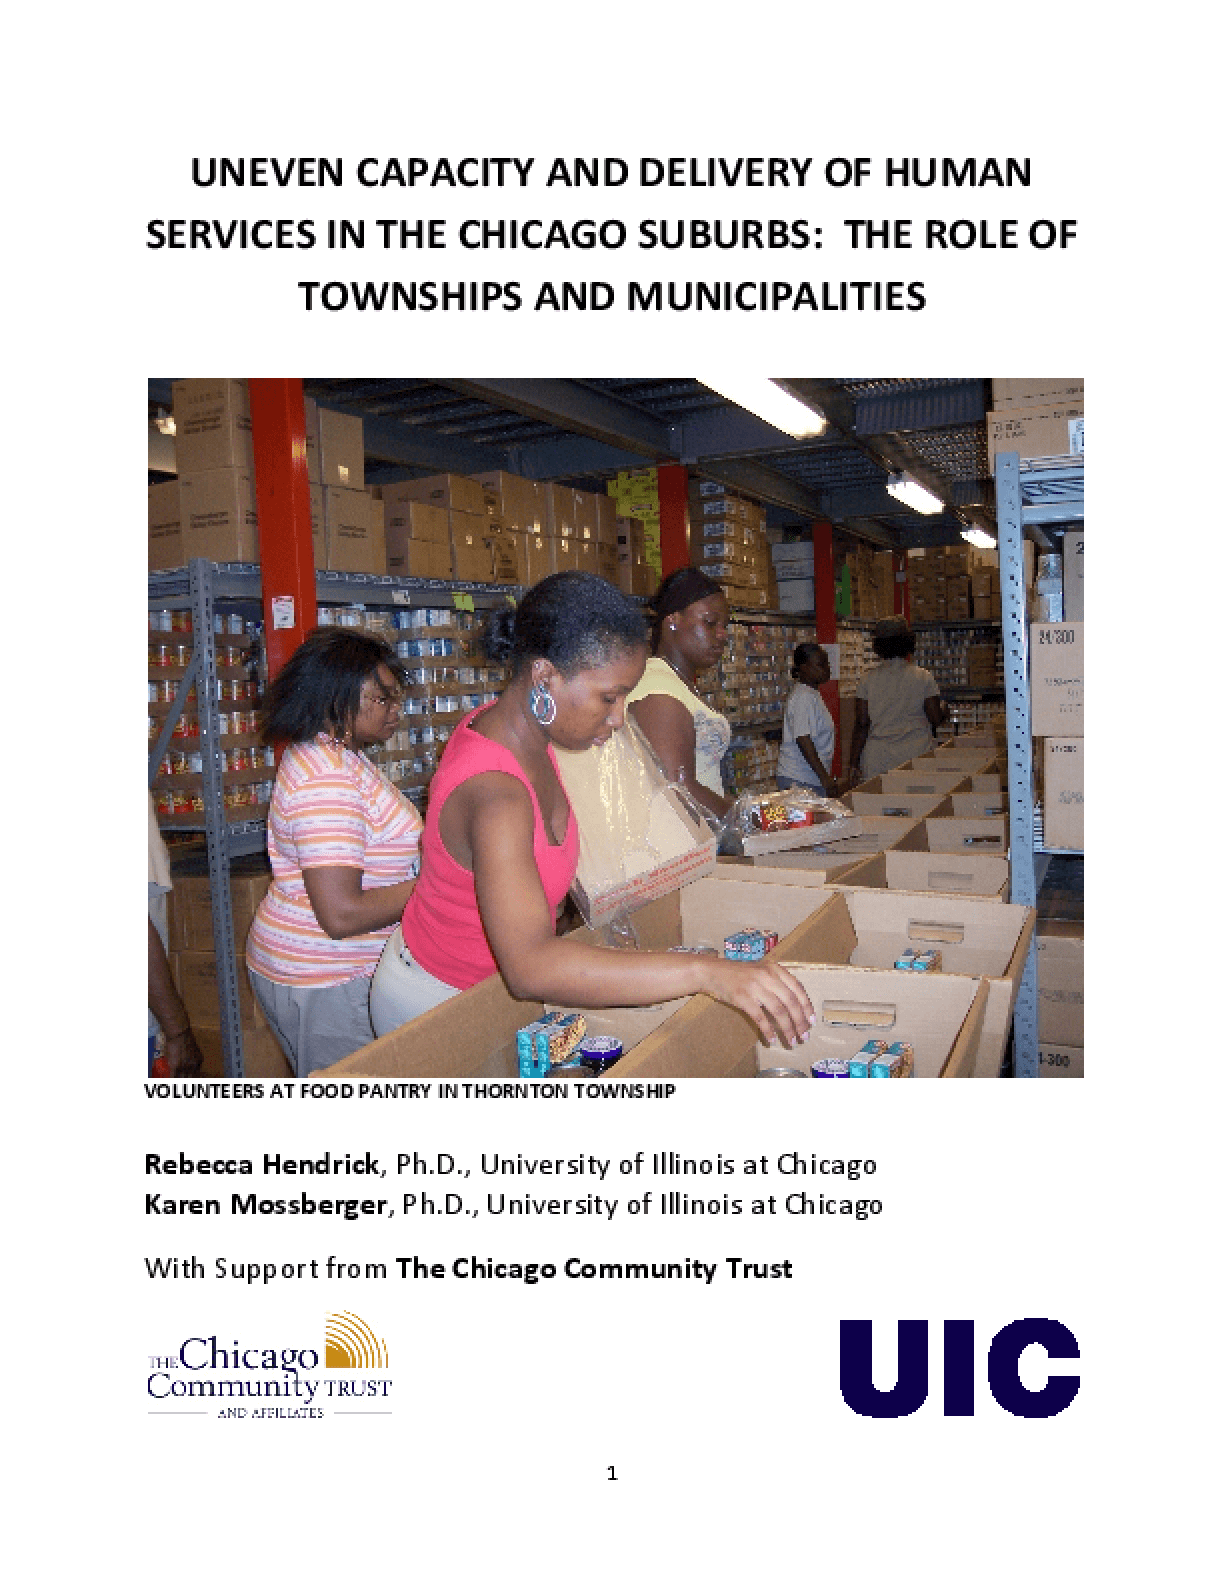 Uneven Capacity and Delivery of Human Services in the Chicago Suburbs: The Role of Townships and Municipalities